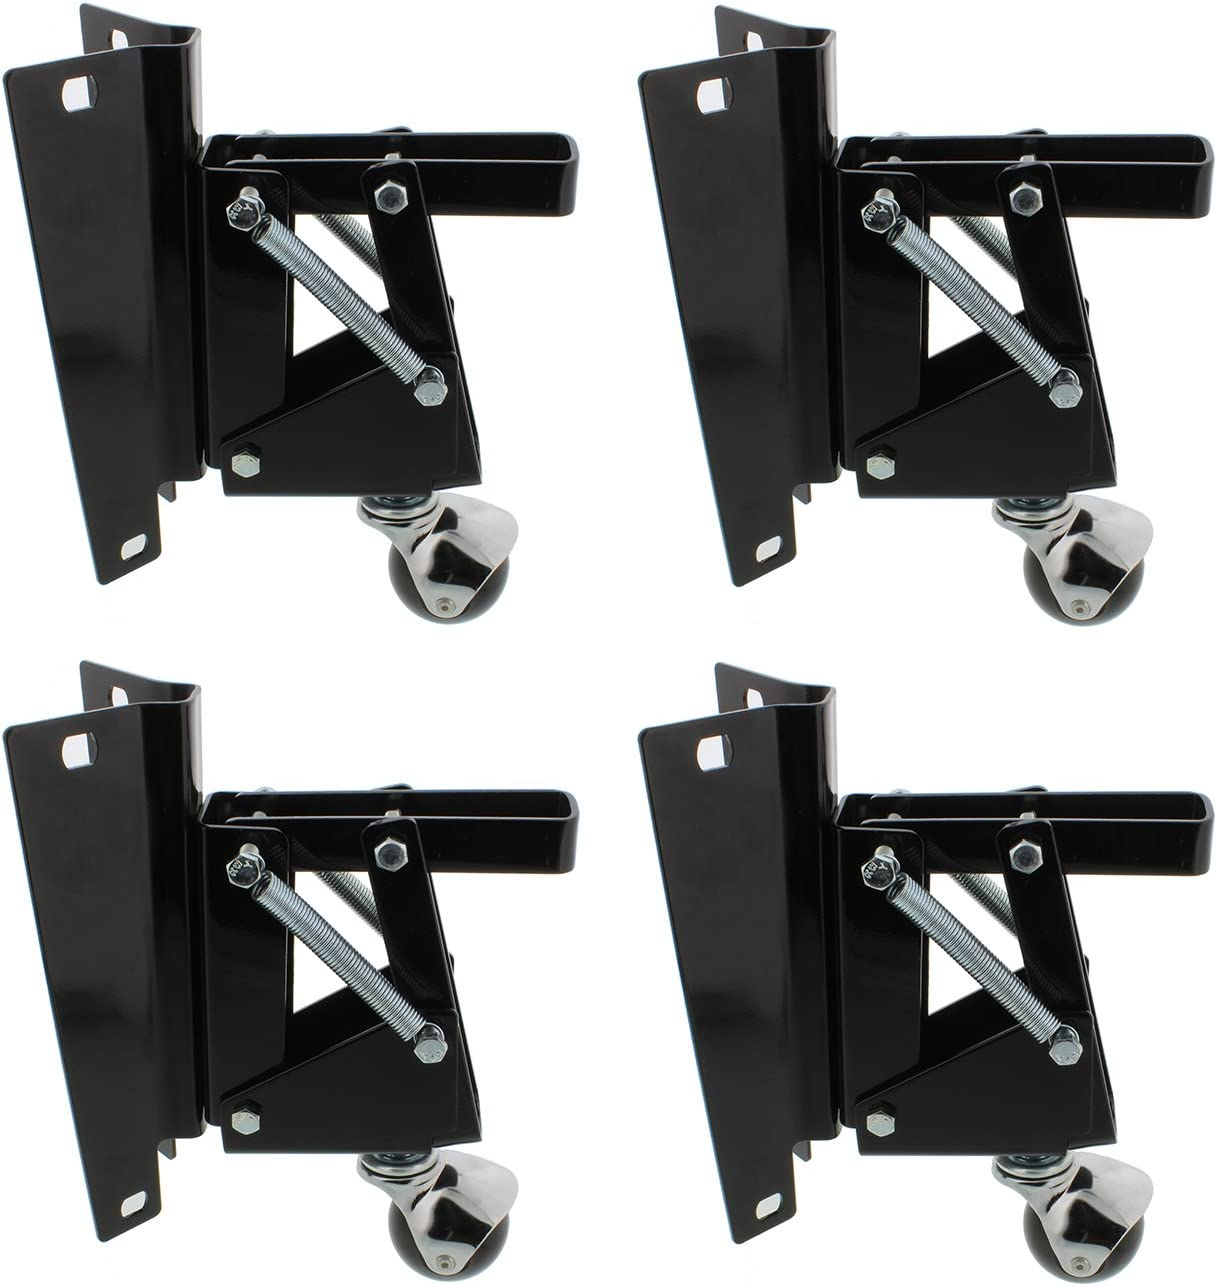 Dct Heavy Duty Retractable Workbench Contractor Saw Swivel Caster Wheels Assembly Set With Mounting Plate Bracket 4 Pack Amazon Com